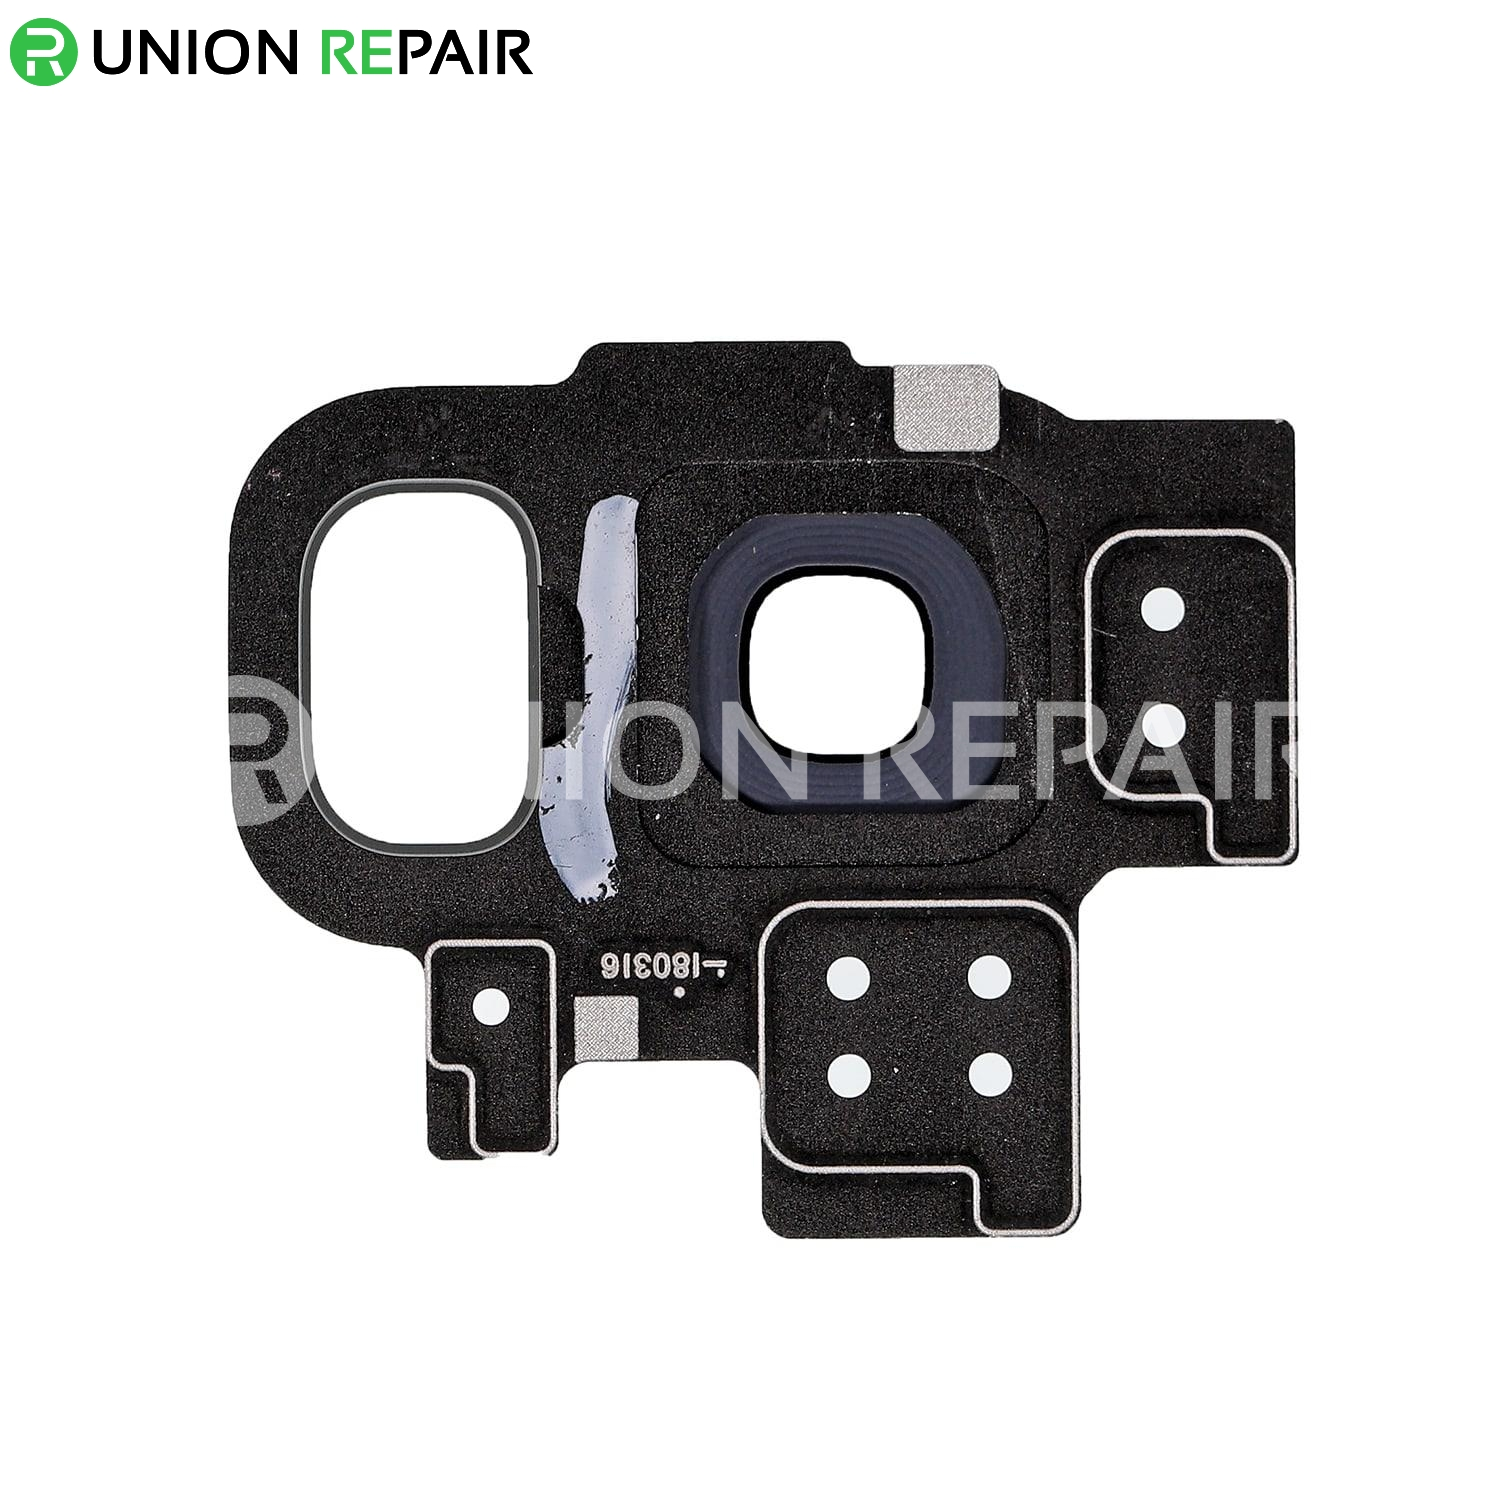 Replacement for Samsung Galaxy S9 SM-G960 Rear Camera Holder with Lens - Grey